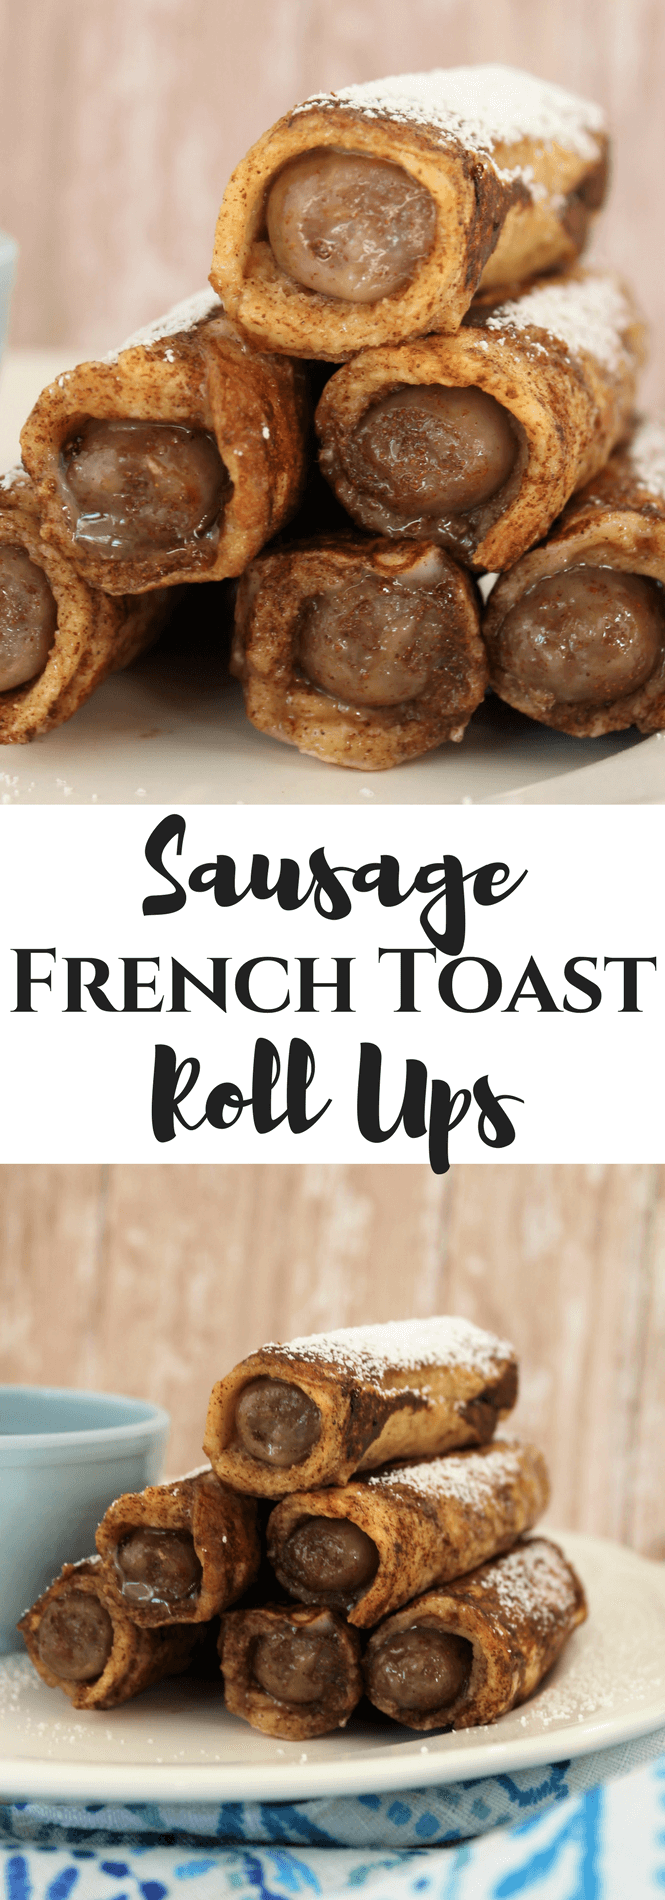 Sausage French Toast Roll Ups